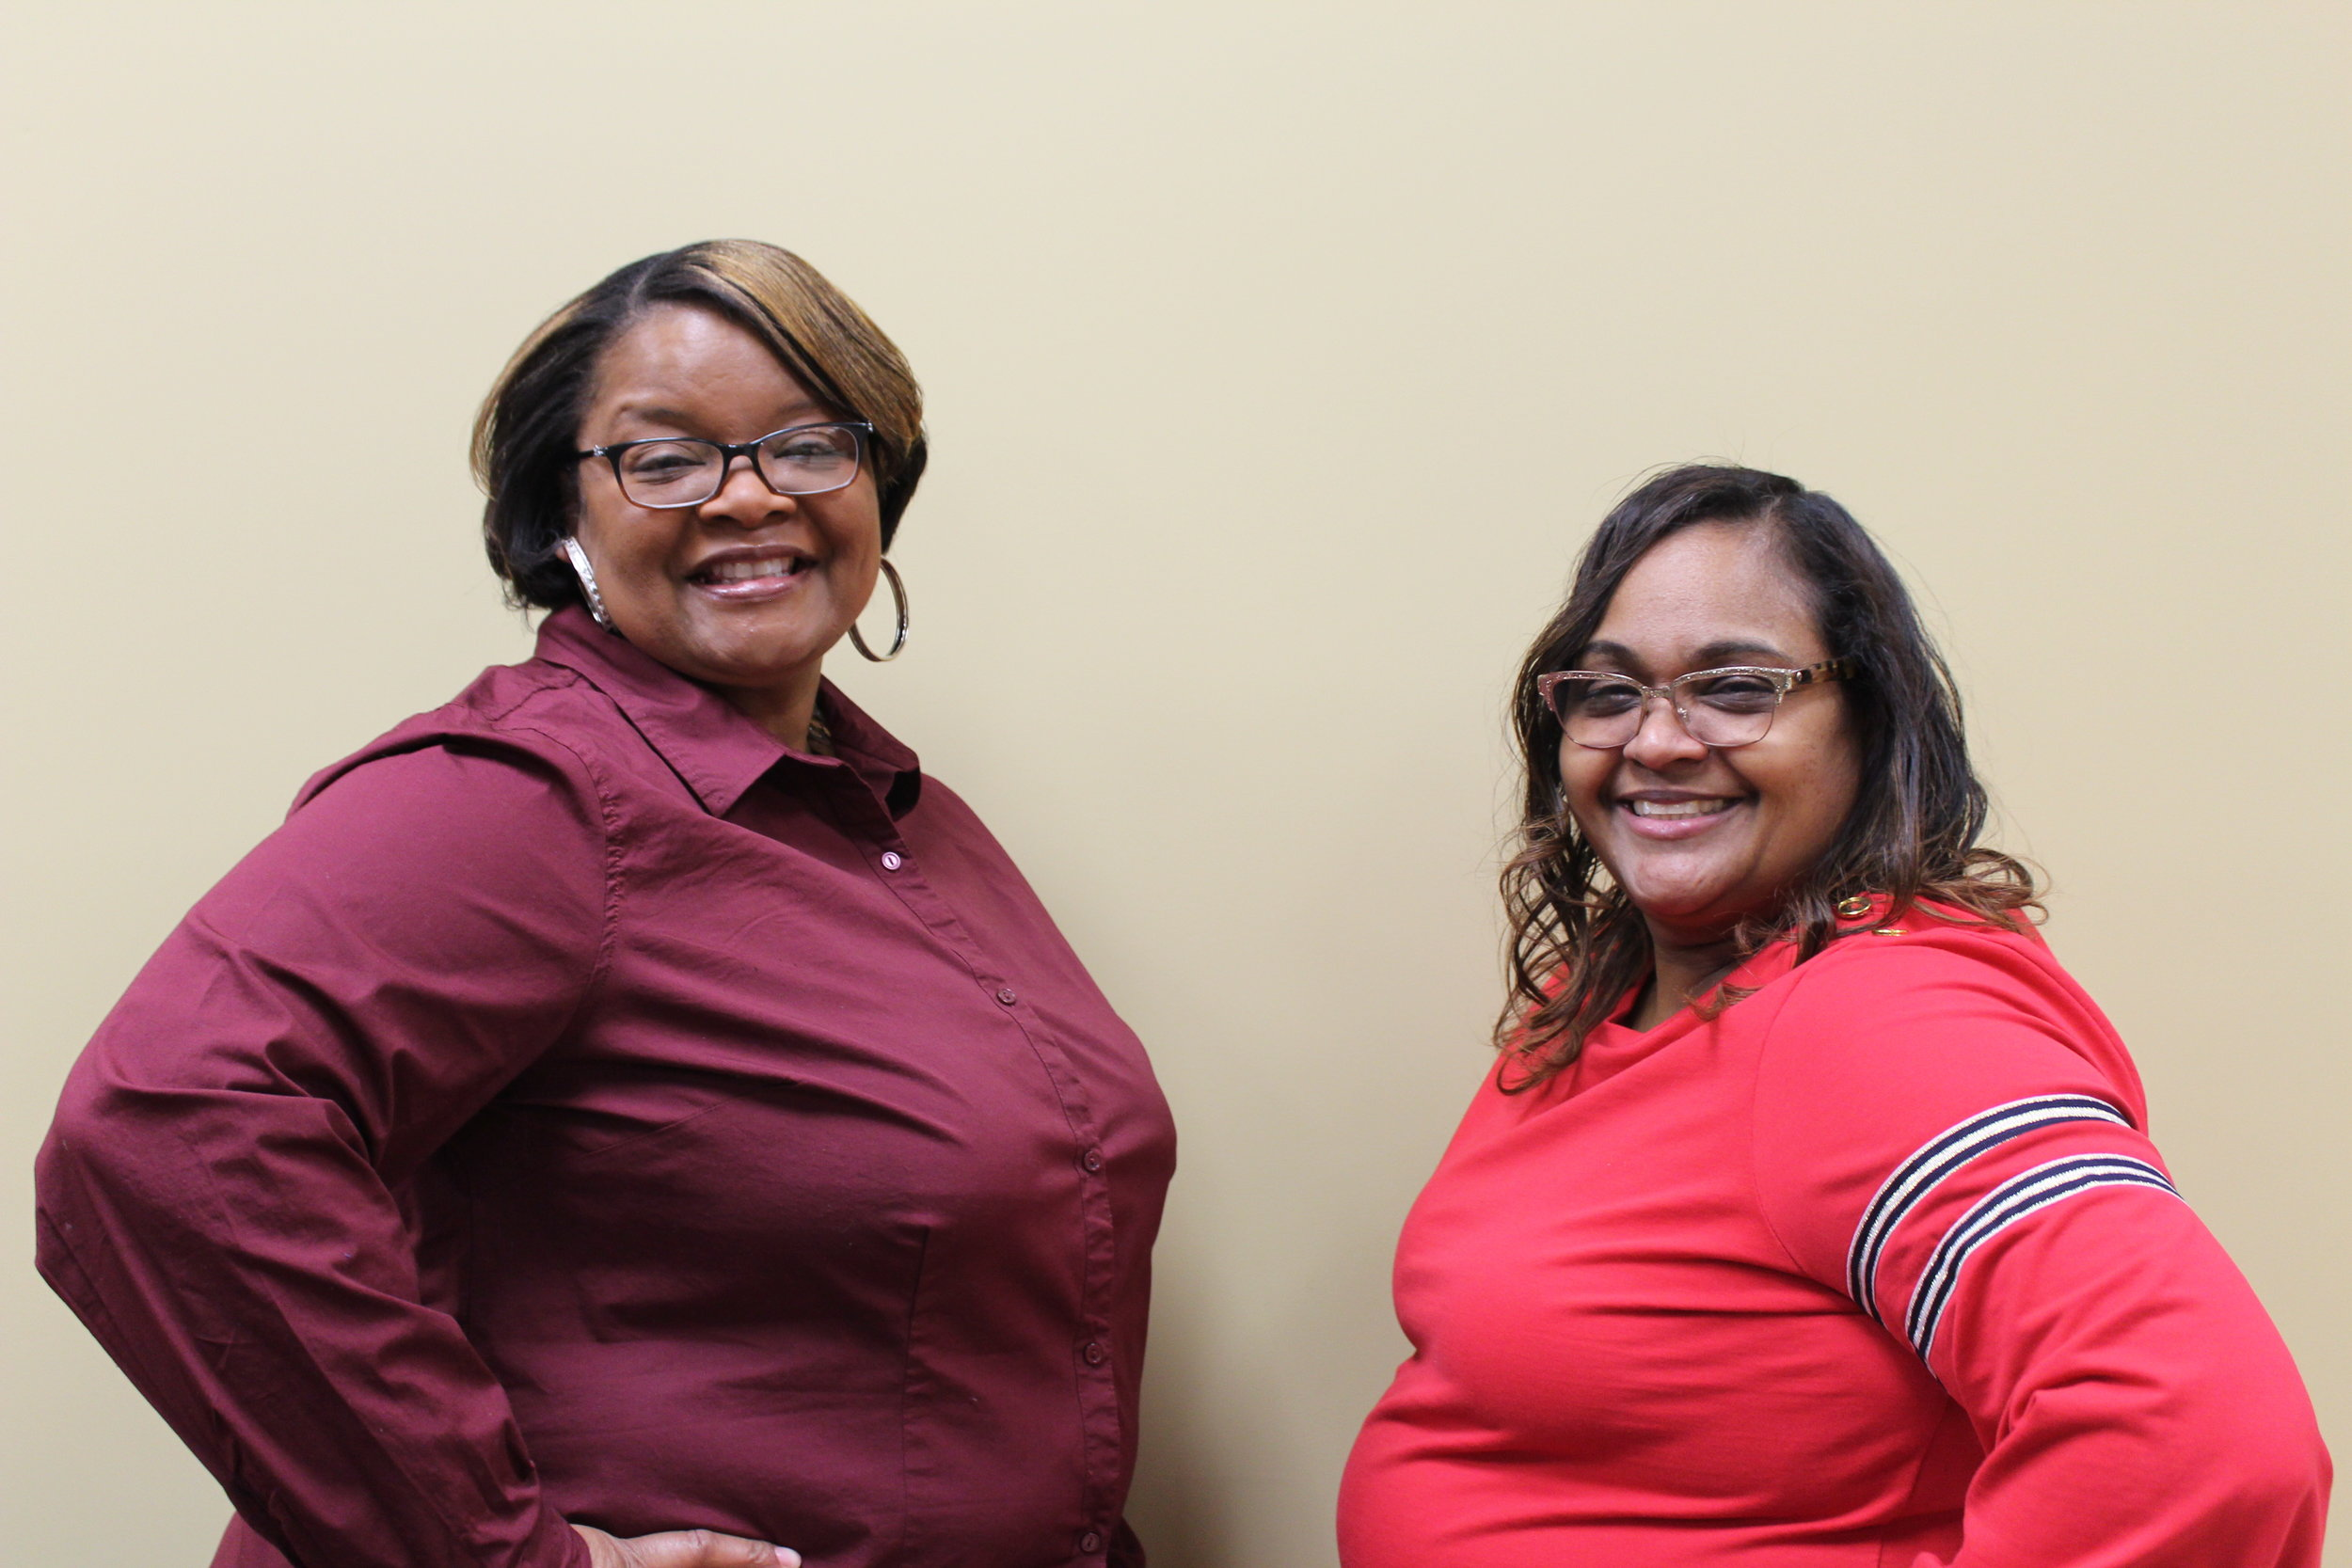 Tina Sessoms & Sharon Whitten   Host: I Am My Sister's Keeper  Date/Time: Mondays @ 7:00PM  Location: Family Life Community Center